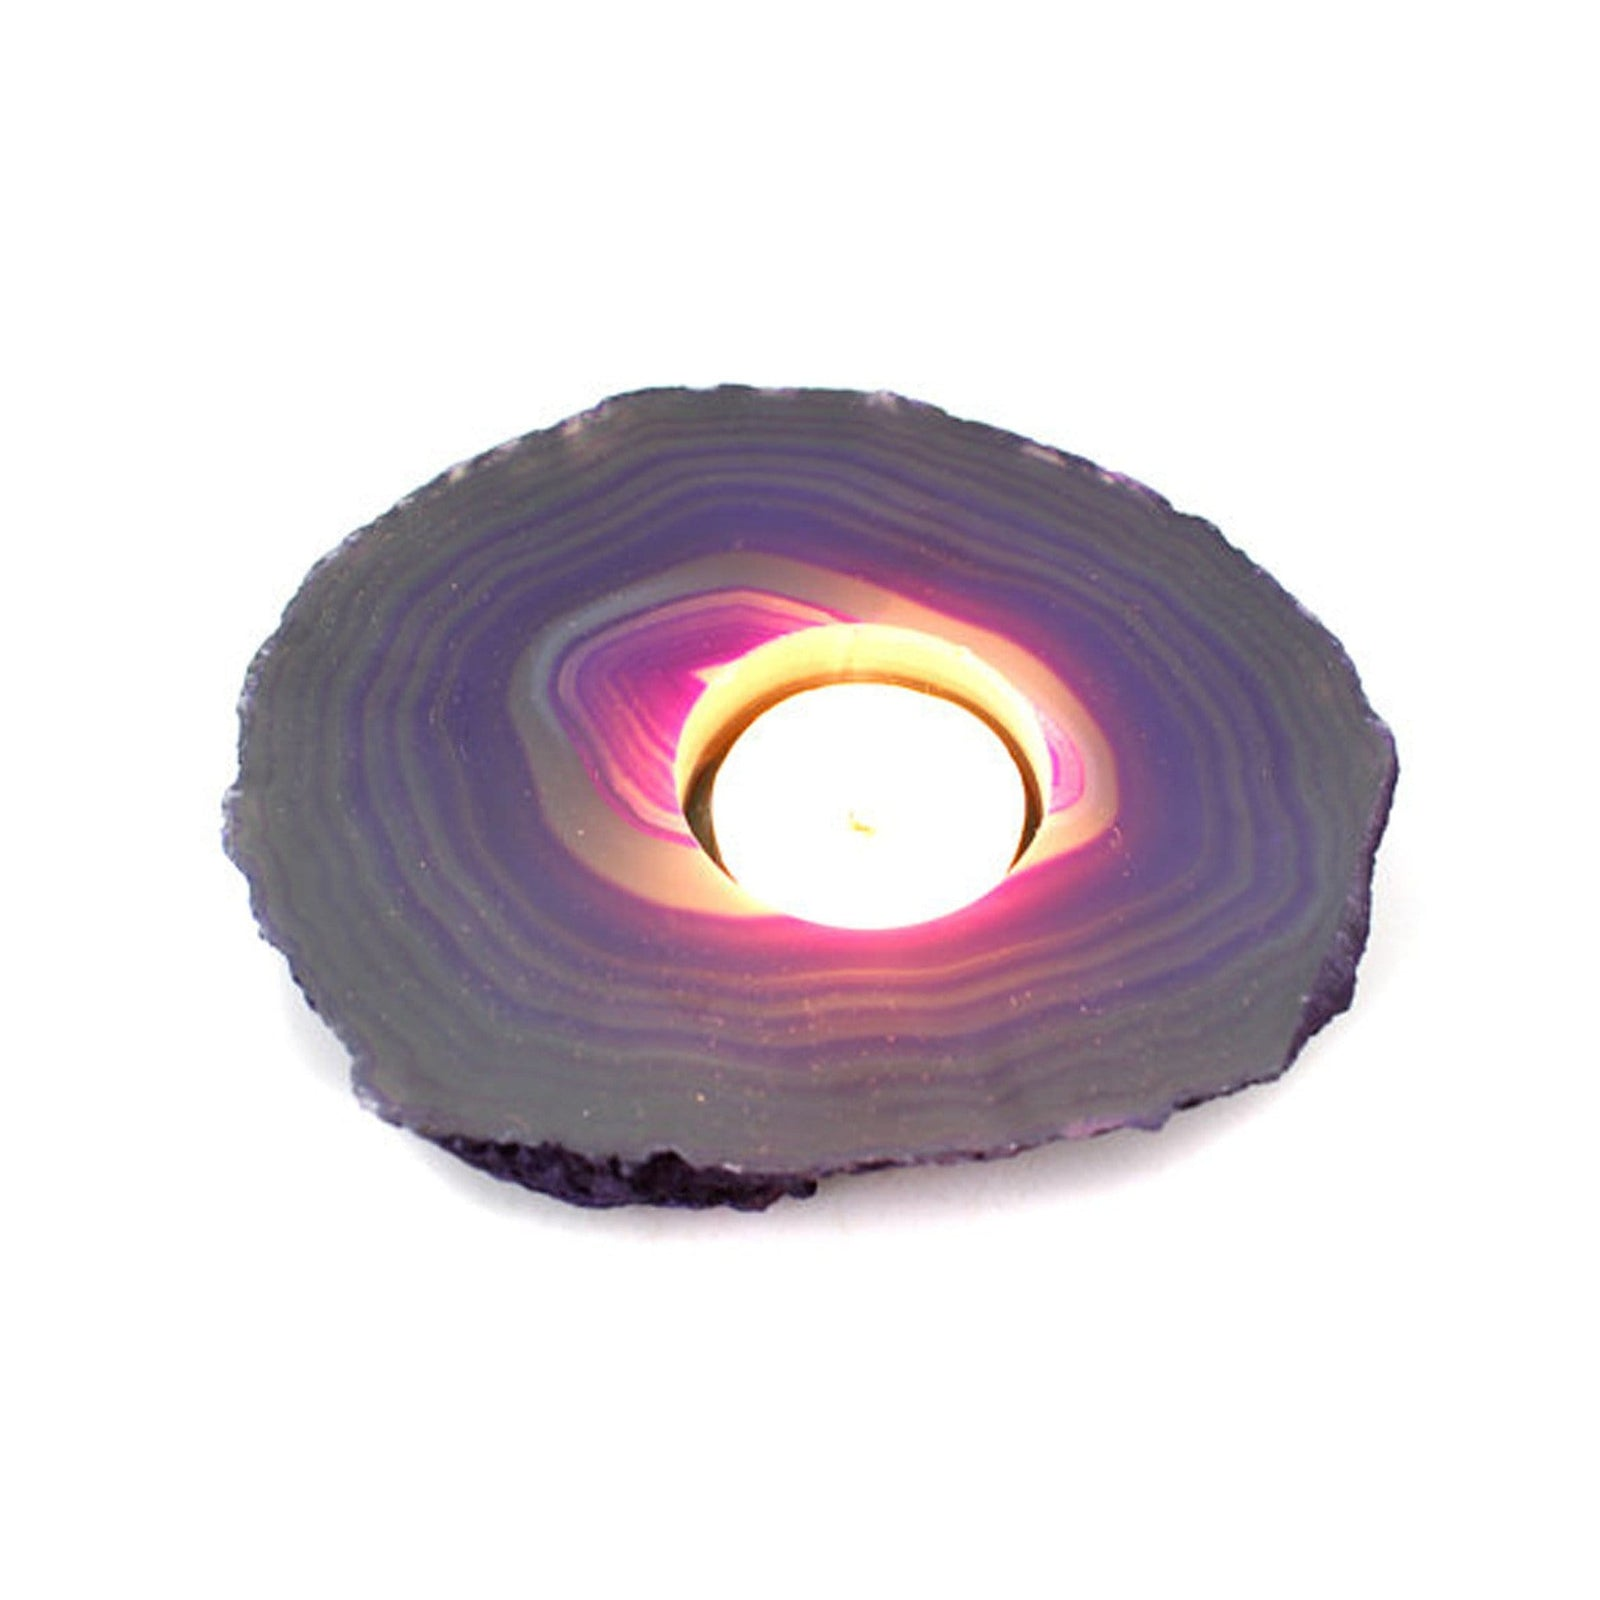 Candle Holders - Agate Slab Candle Holder - Purple